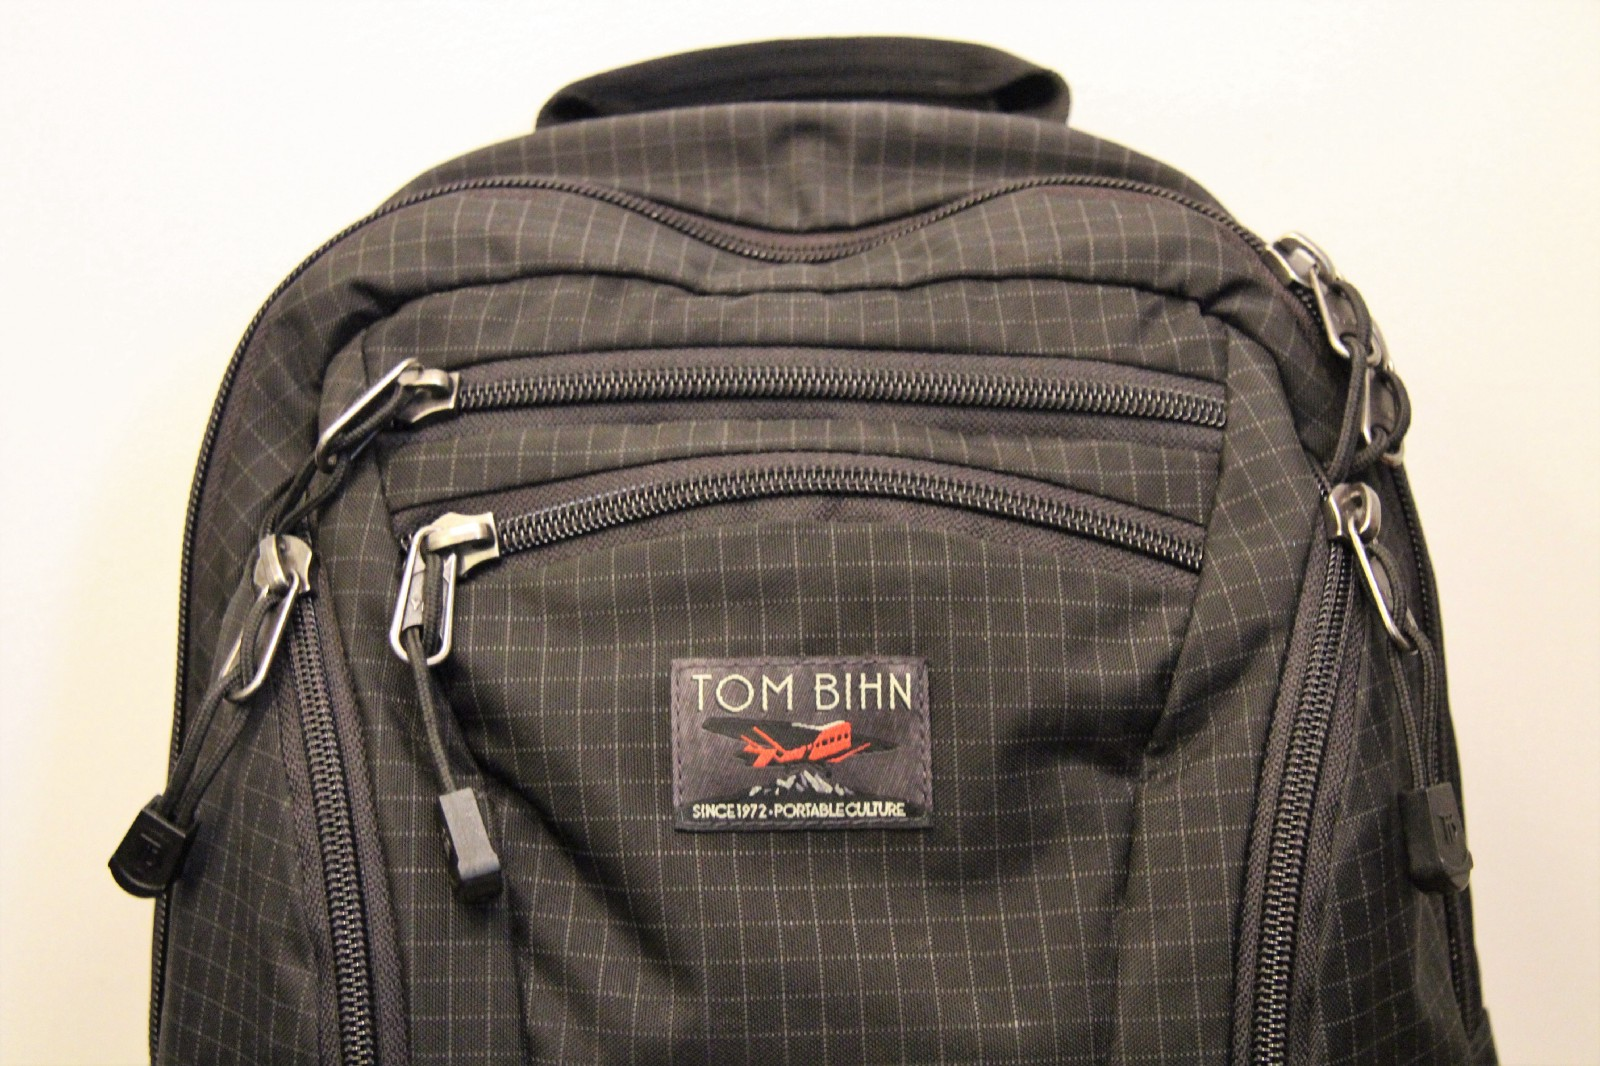 328b5c507146 Tom Bihn Synapse 19 — Comprehensive Review – Pangolins with Packs